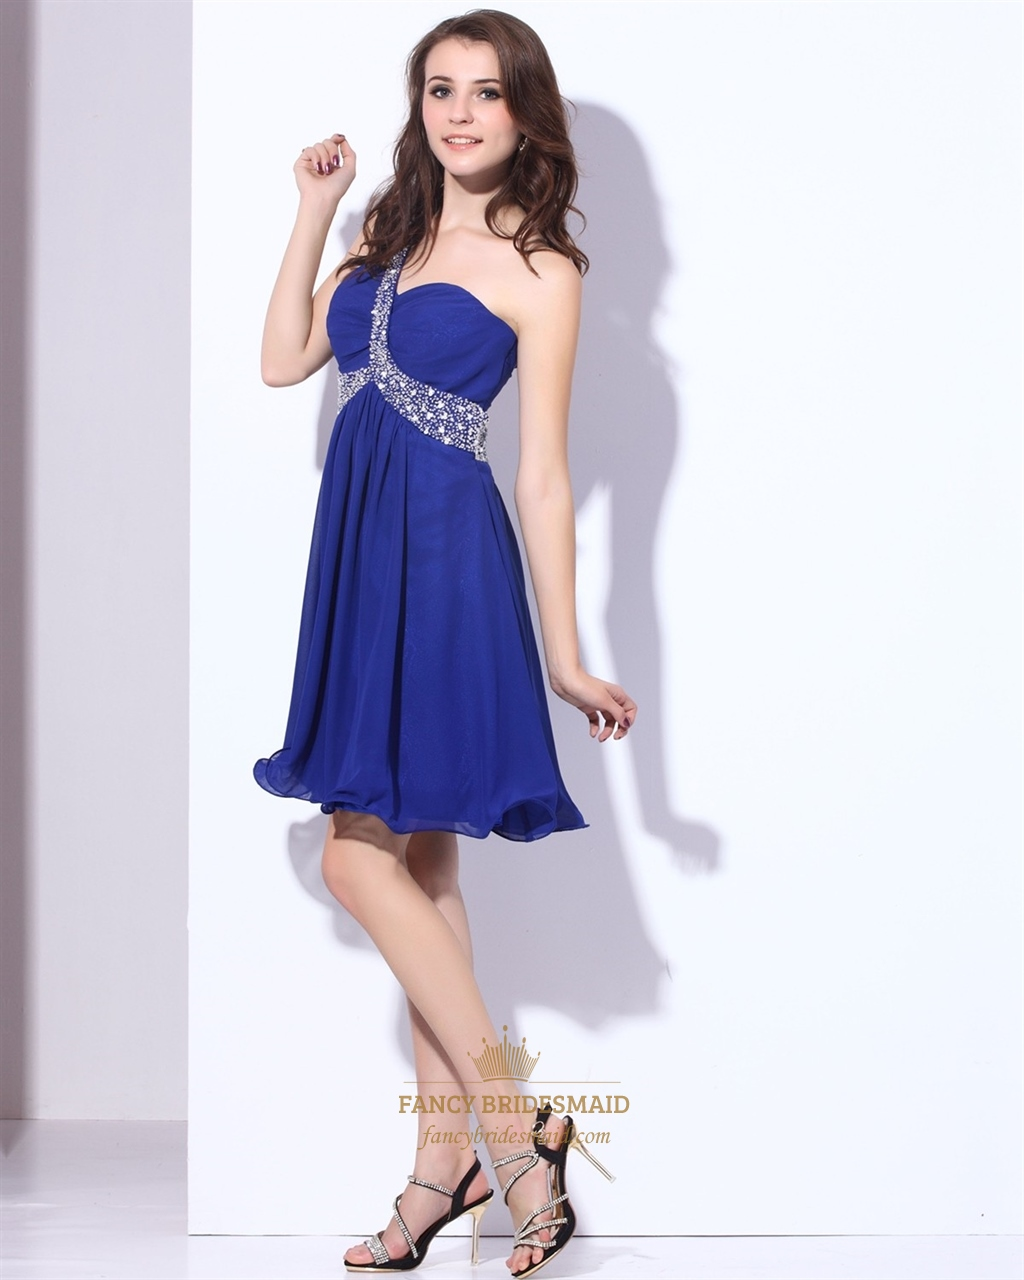 Buy the latest blue one strap dress cheap shop fashion style with free shipping, and check out our daily updated new arrival blue one strap dress at tenbadownload.ga